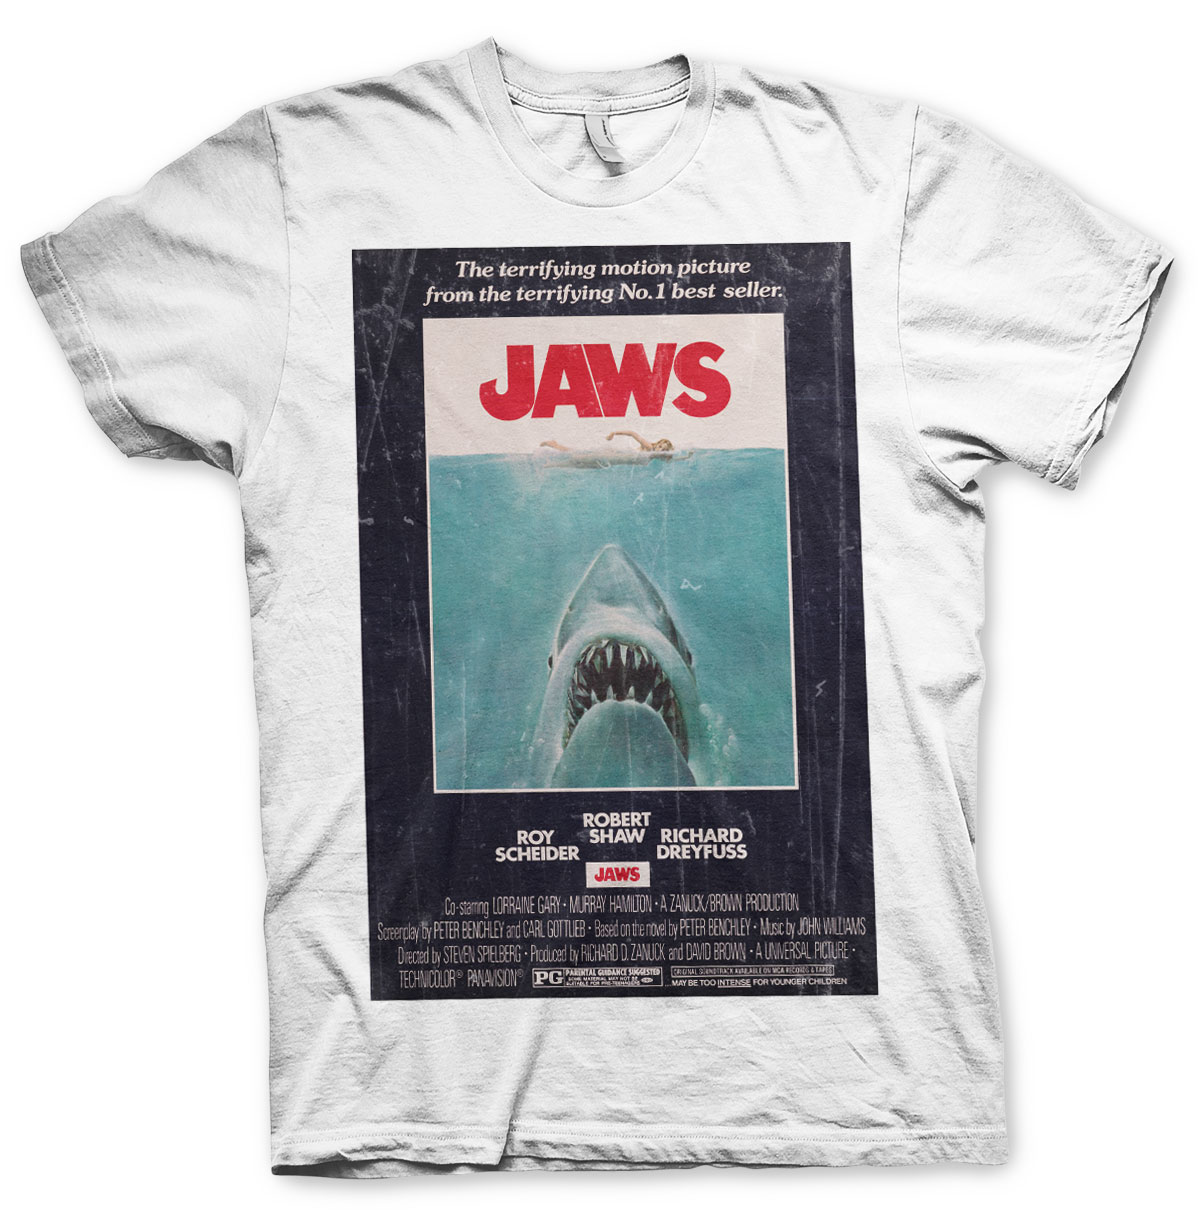 41144ff55 T-shirt Jaws Lo Shark Vintage Original Poster men's sweater official ...